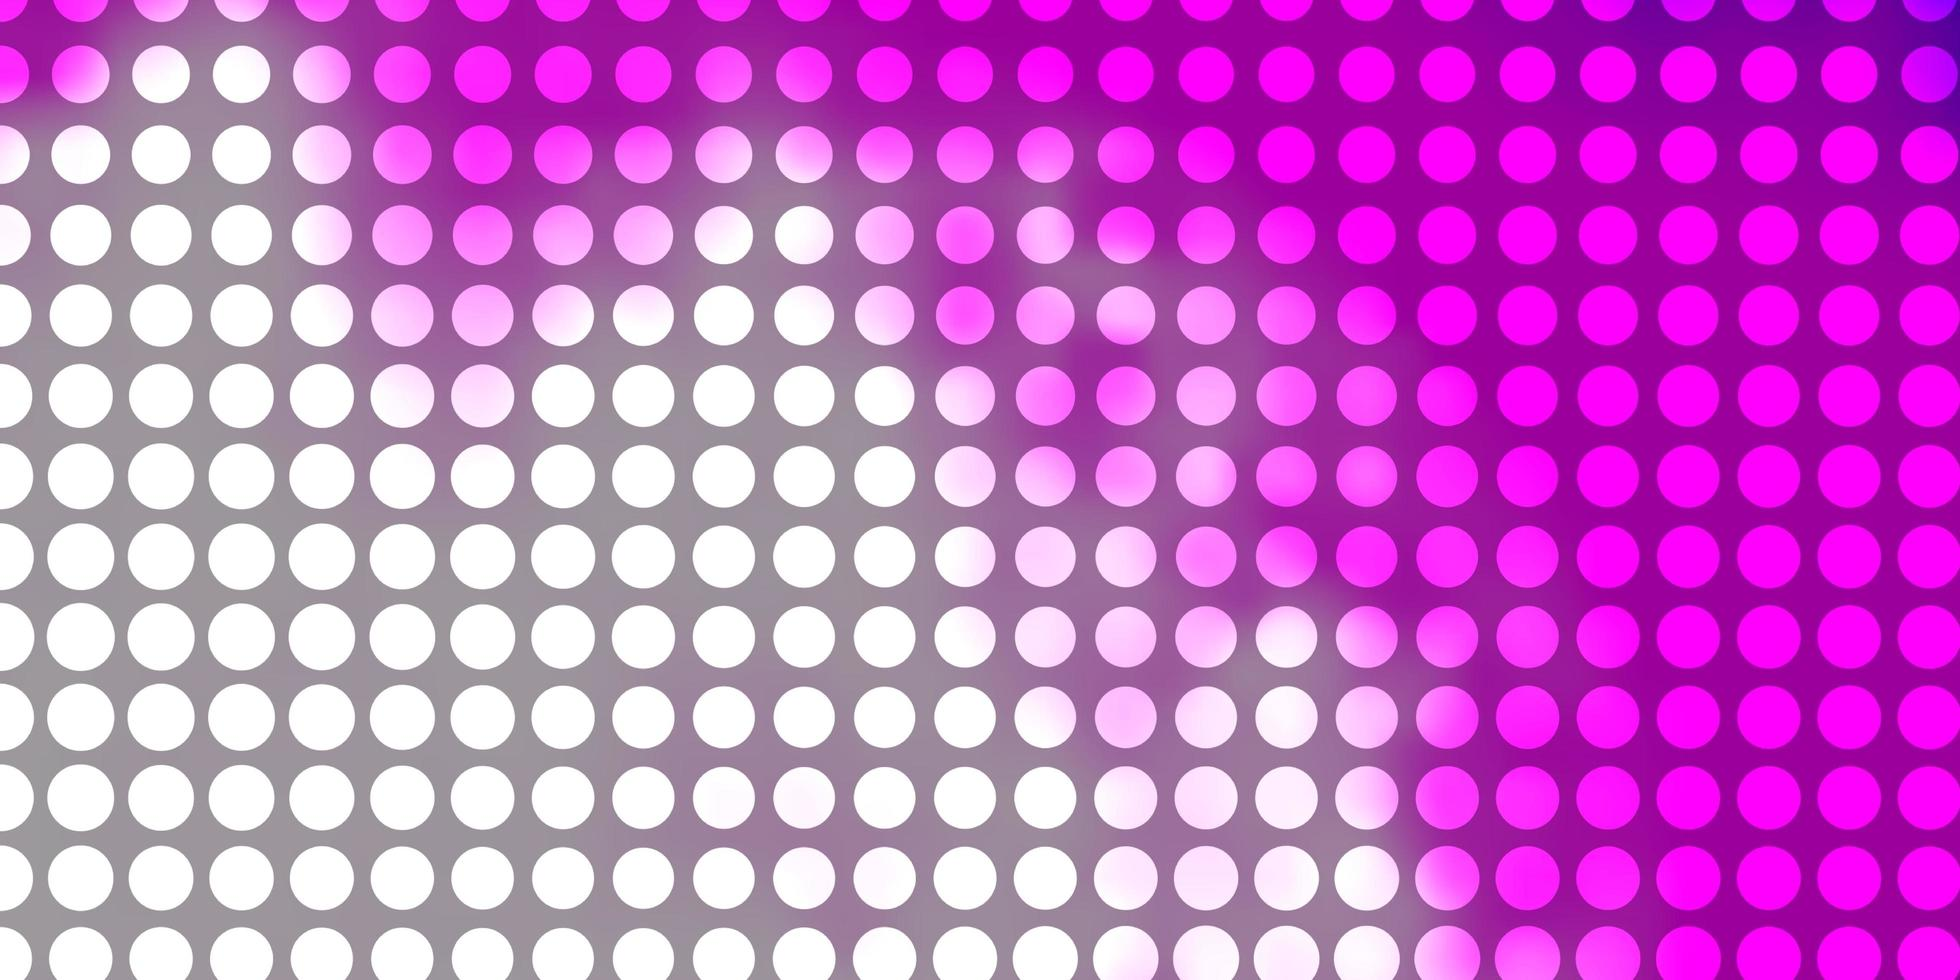 Pink background with circles. vector